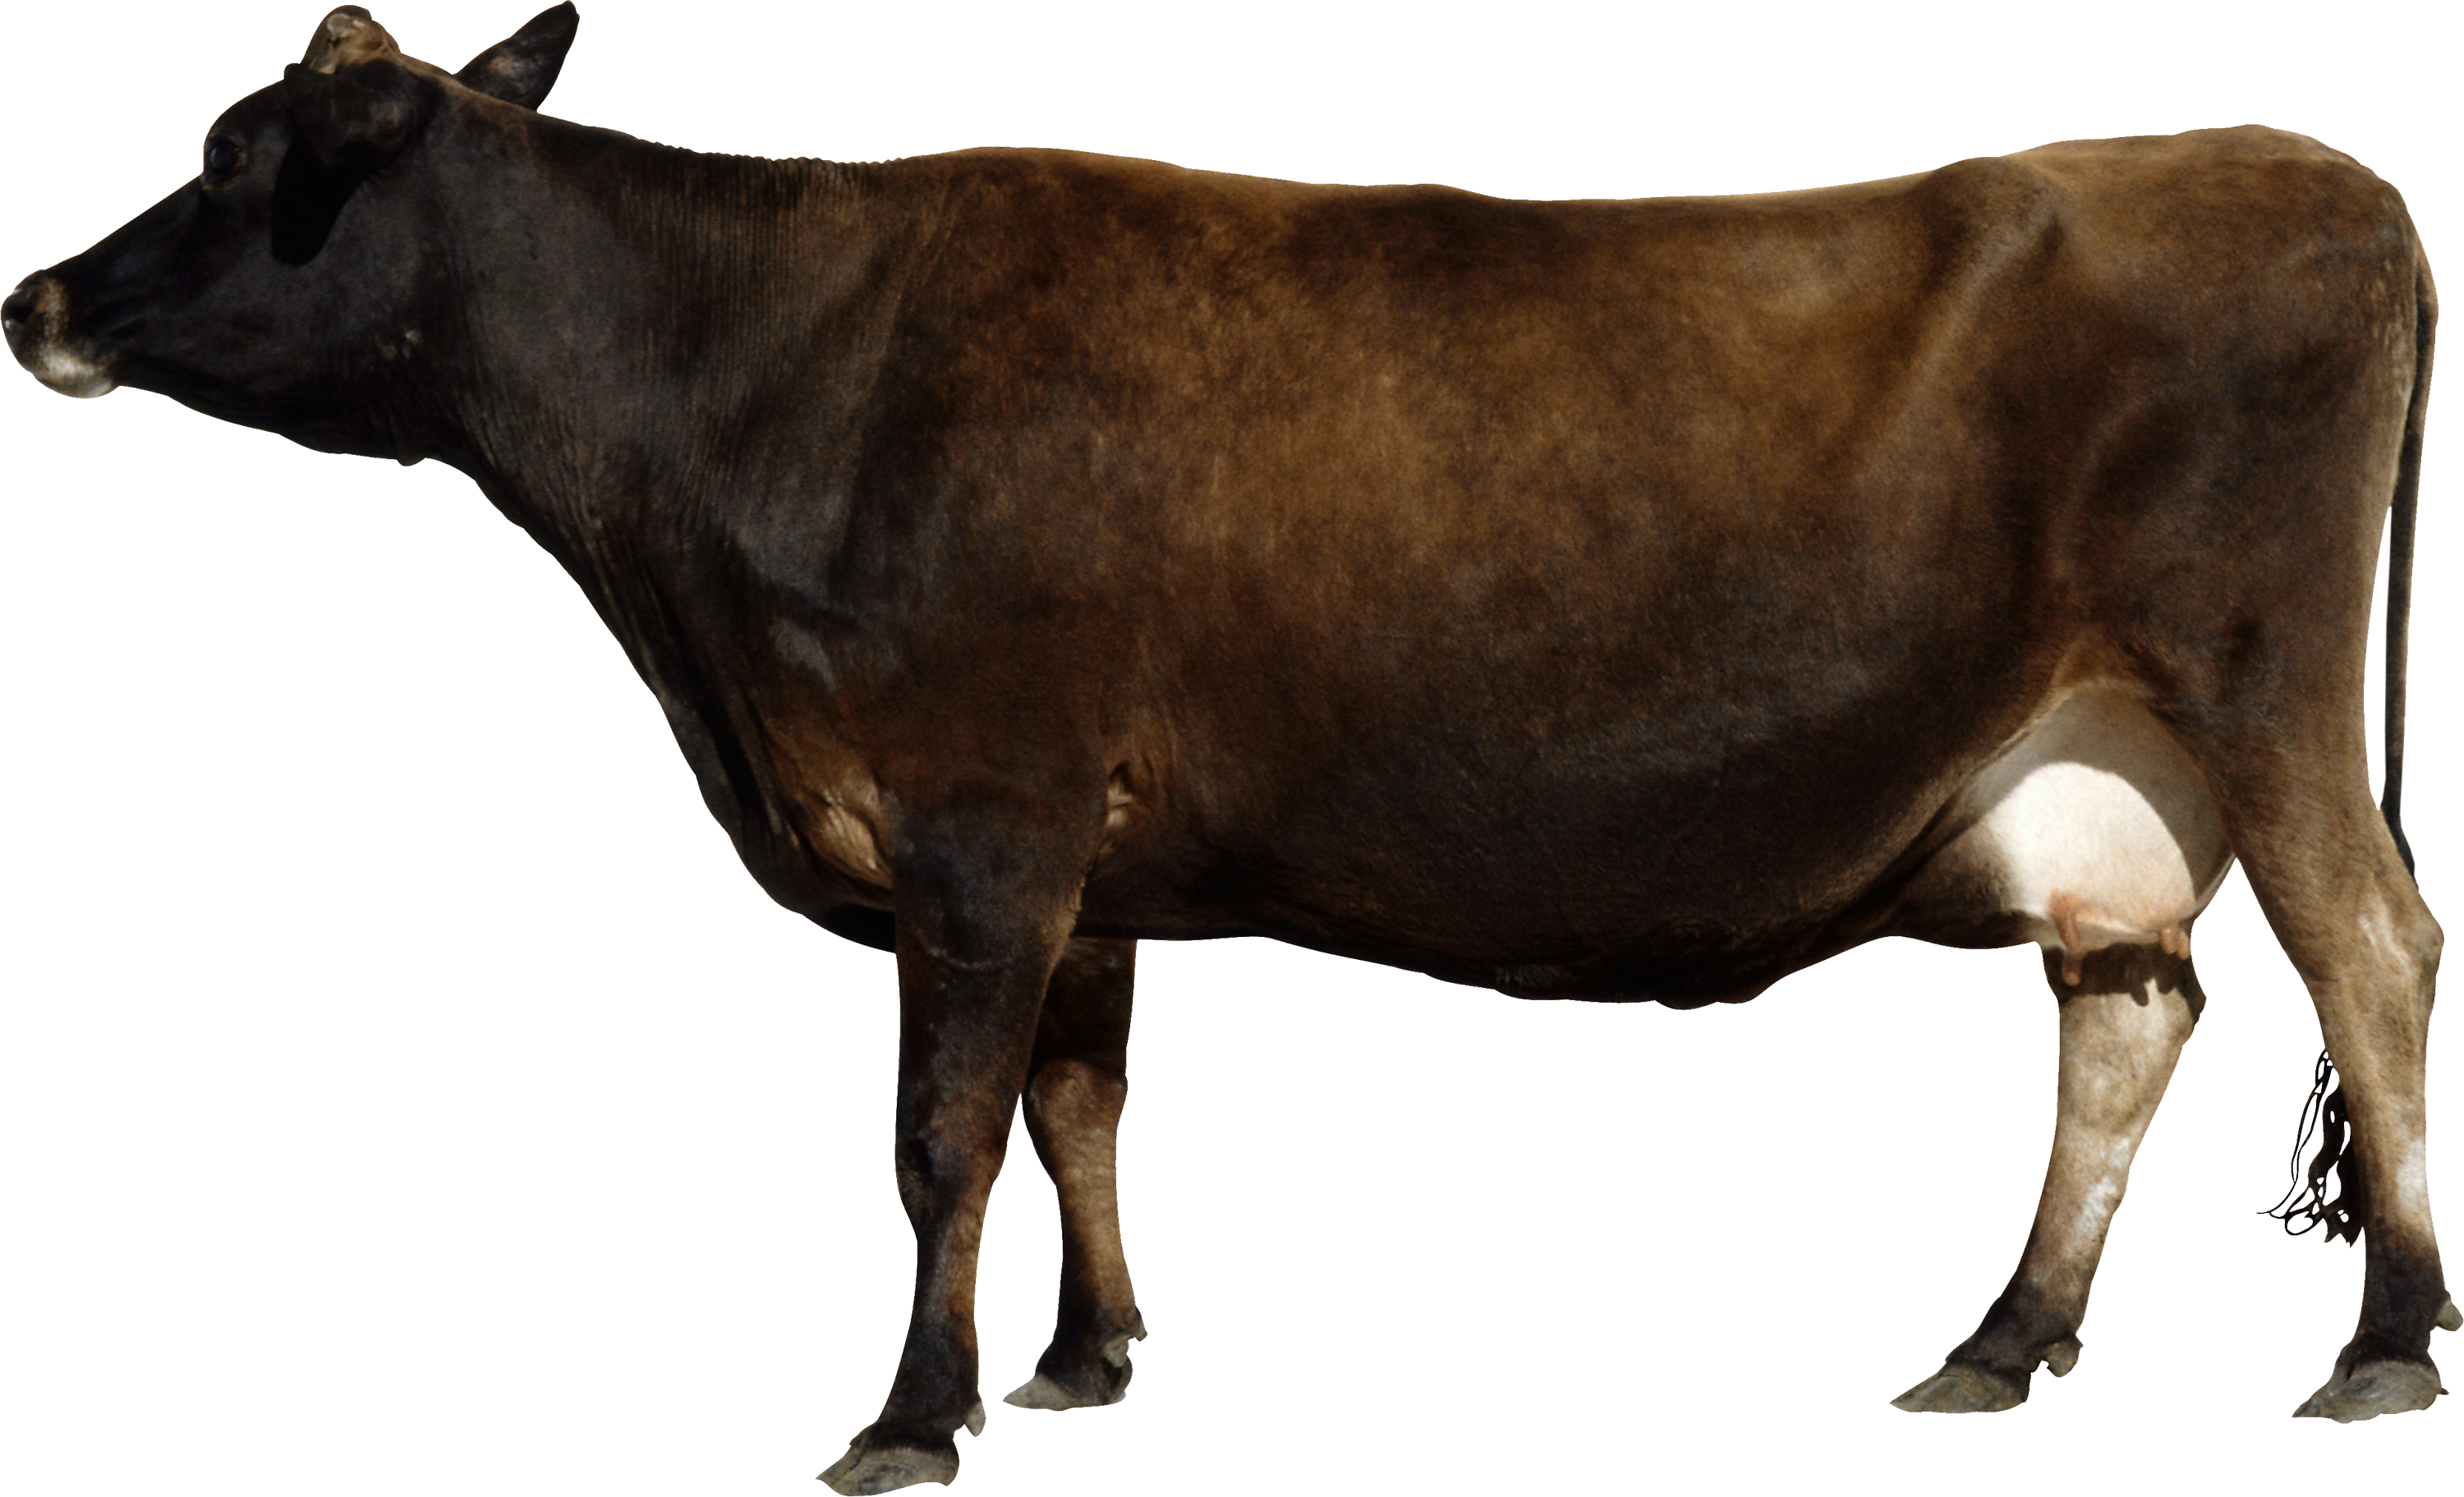 Cow PNG Image - Cow HD PNG